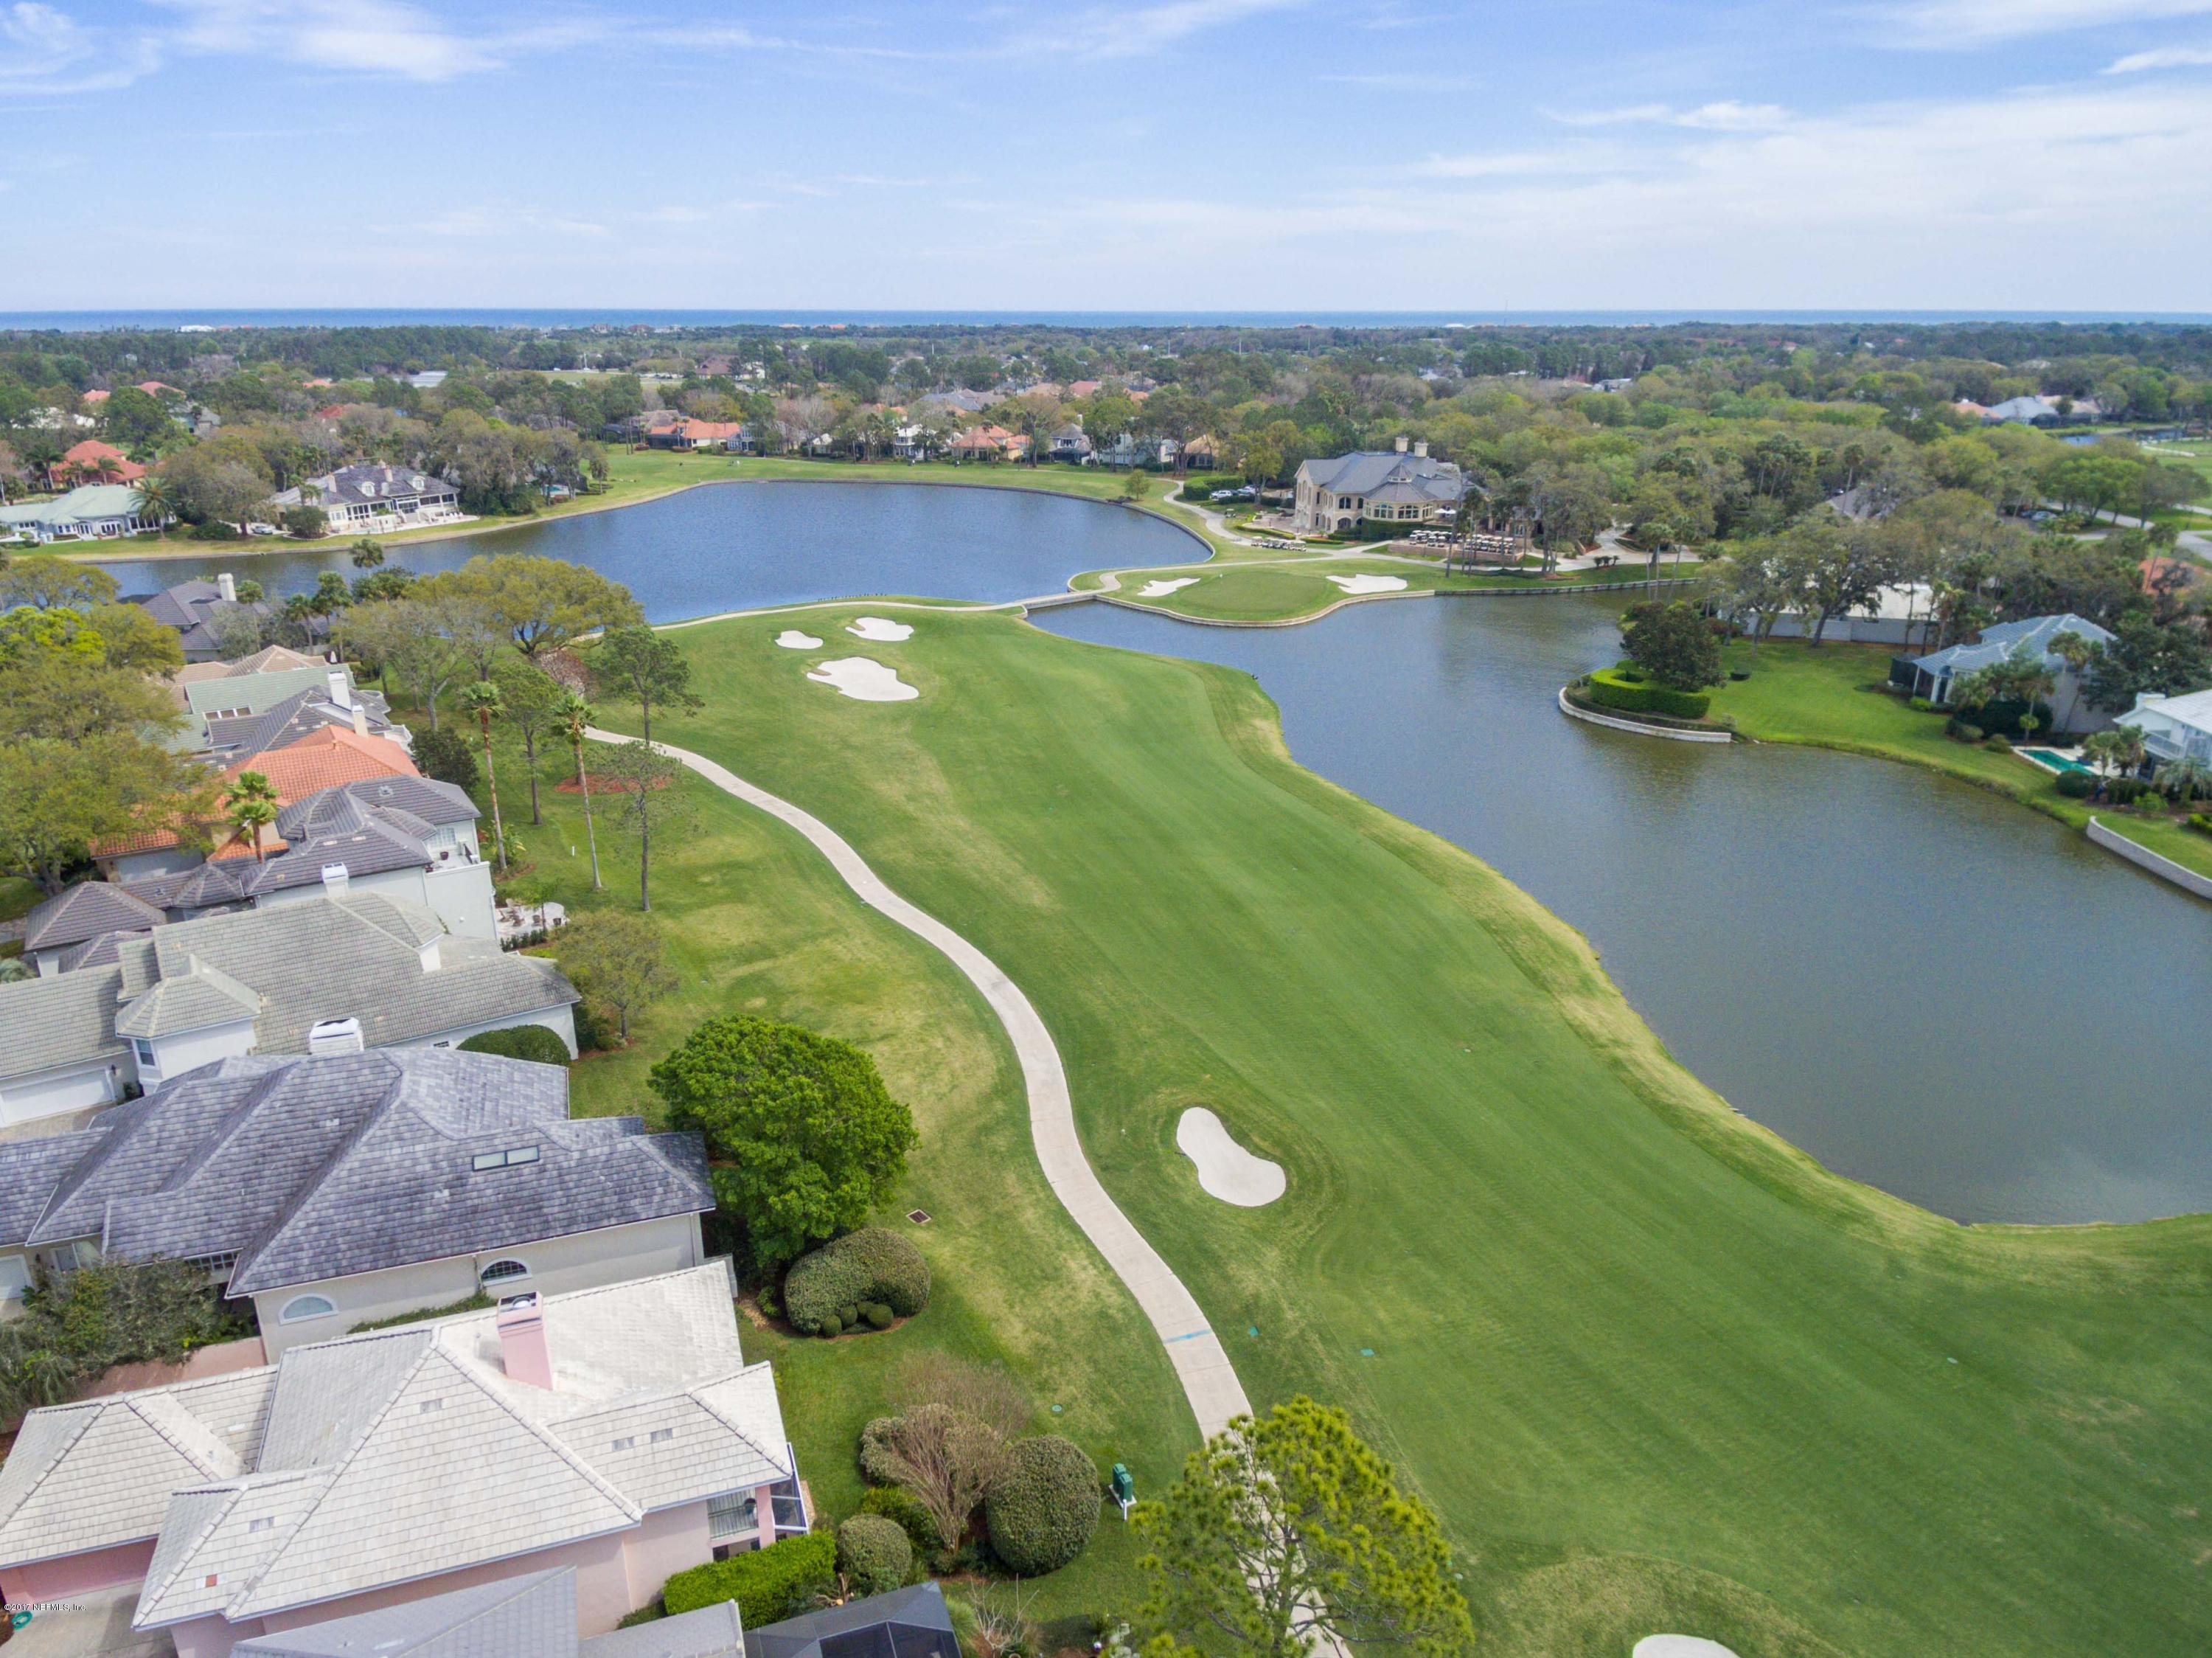 196 LAUREL, PONTE VEDRA BEACH, FLORIDA 32082, 3 Bedrooms Bedrooms, ,3 BathroomsBathrooms,Residential,For sale,LAUREL,1037374